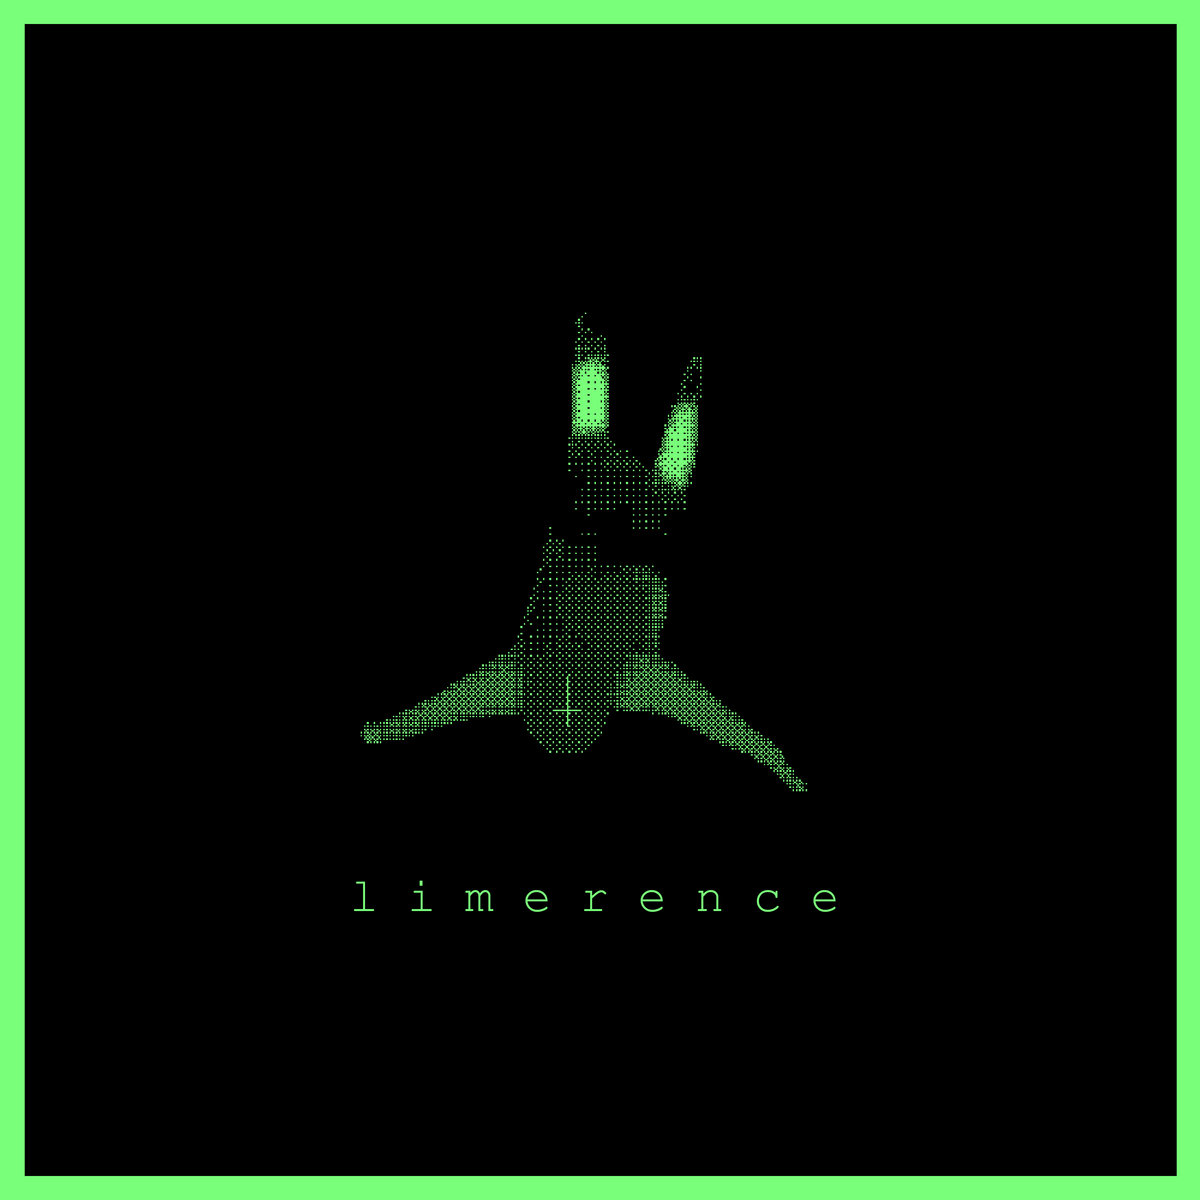 LIMERENCE | kyonpalm